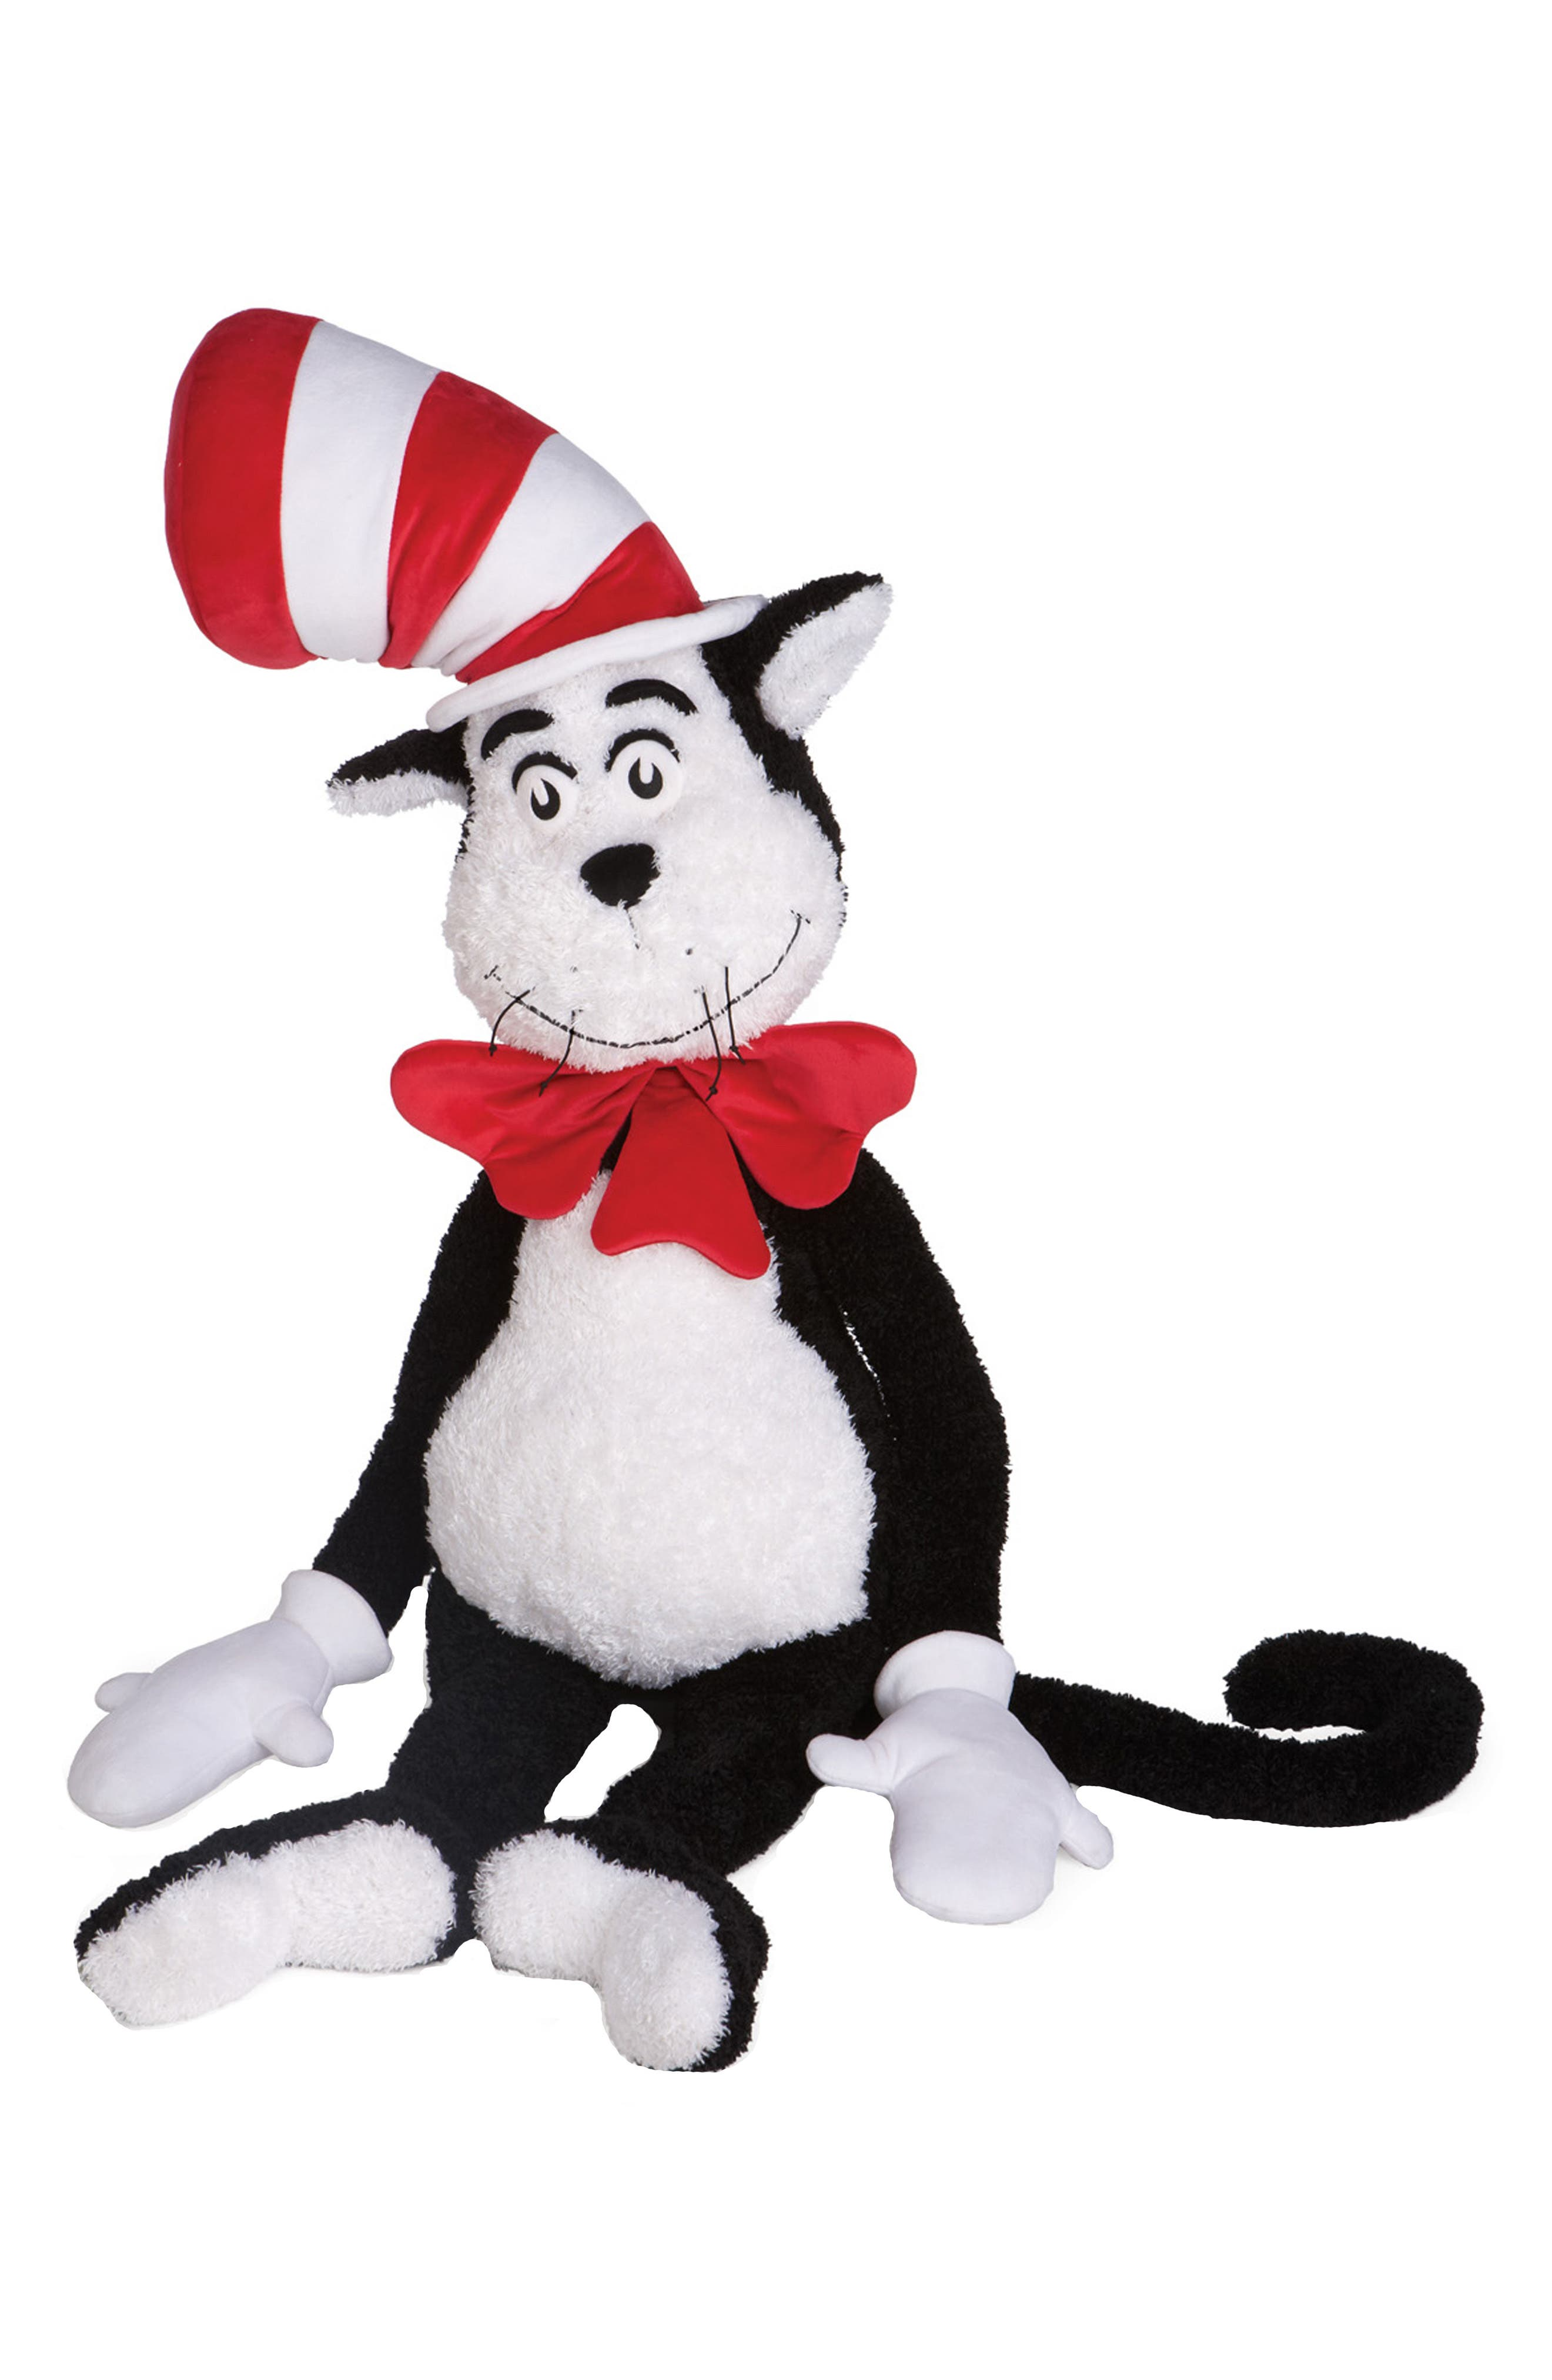 Dr. Seuss The Cat In The Hat Jumbo Stuffed Animal,                         Main,                         color, 001